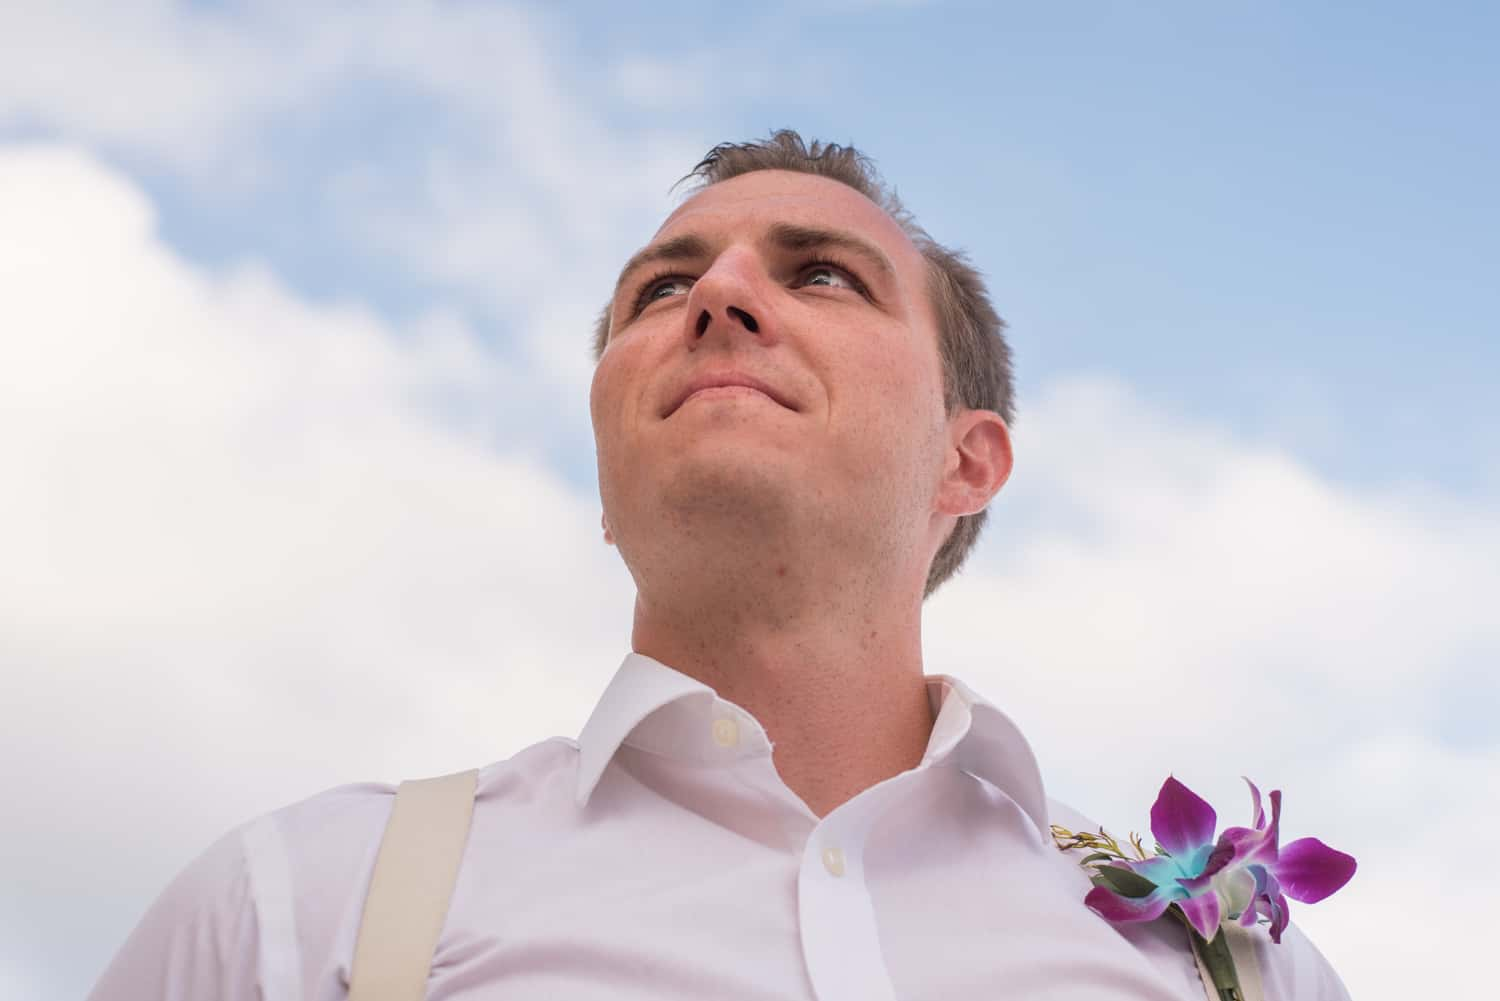 Groomsman with orchid bouttenniere